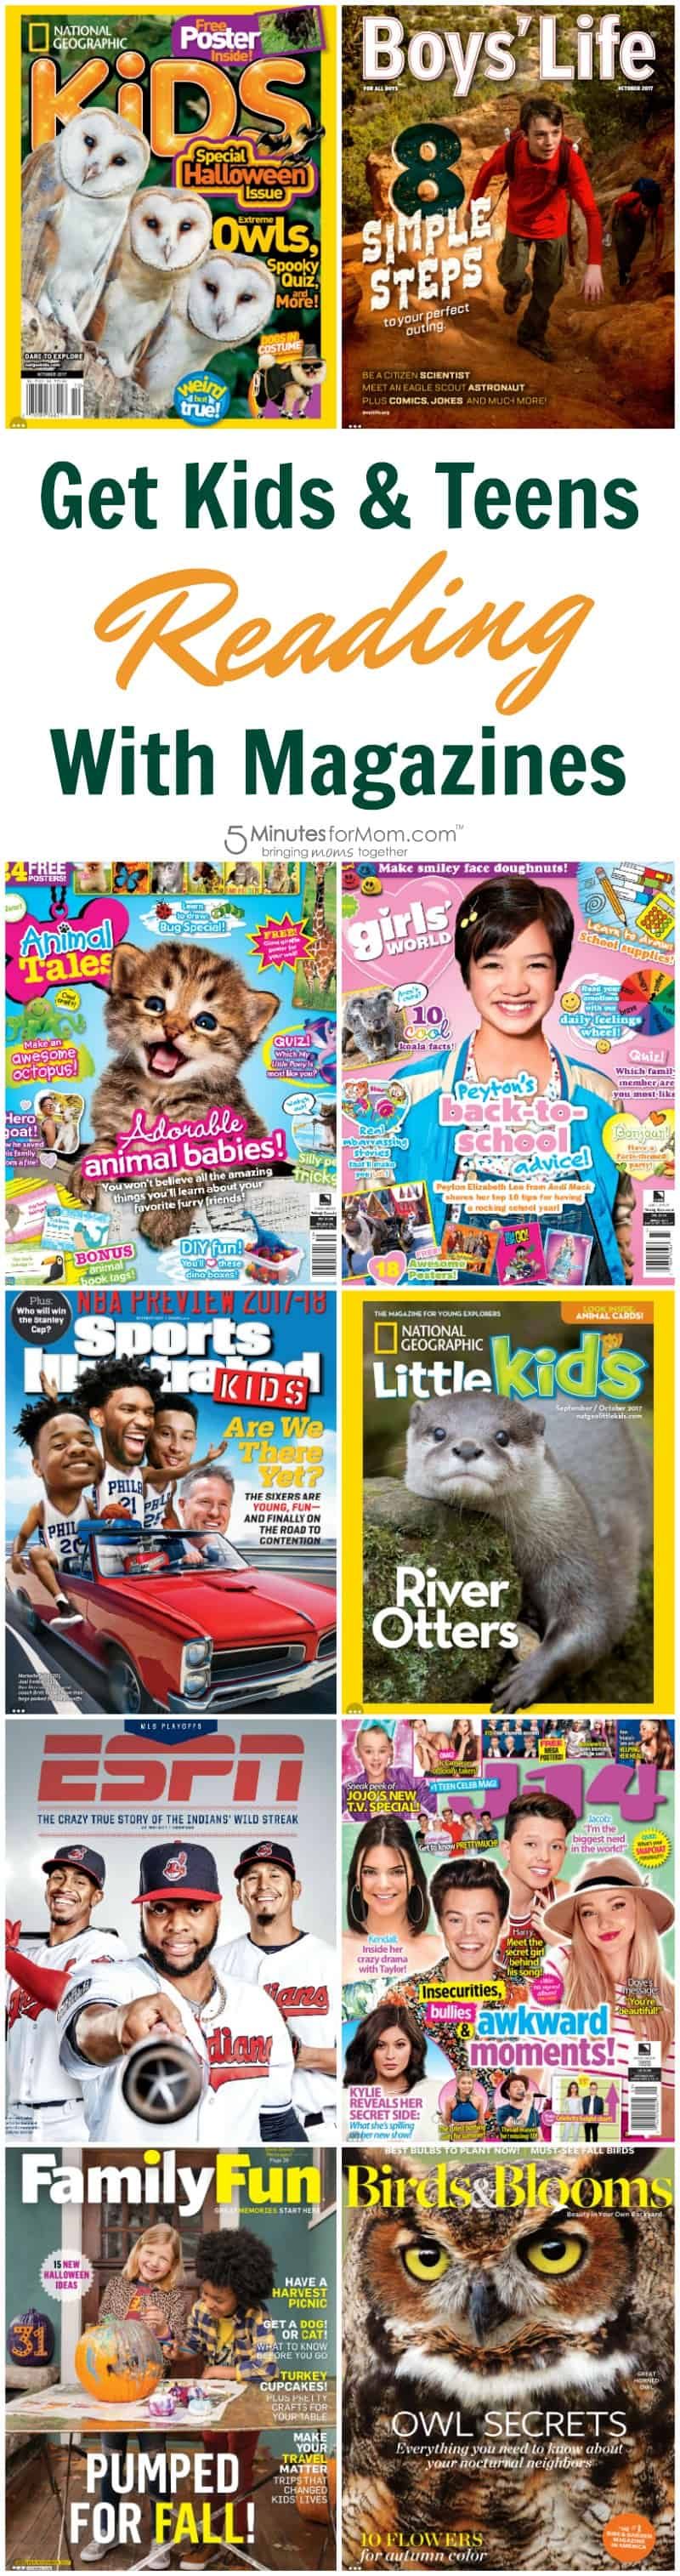 Get Kids and Teens Reading With Magazines